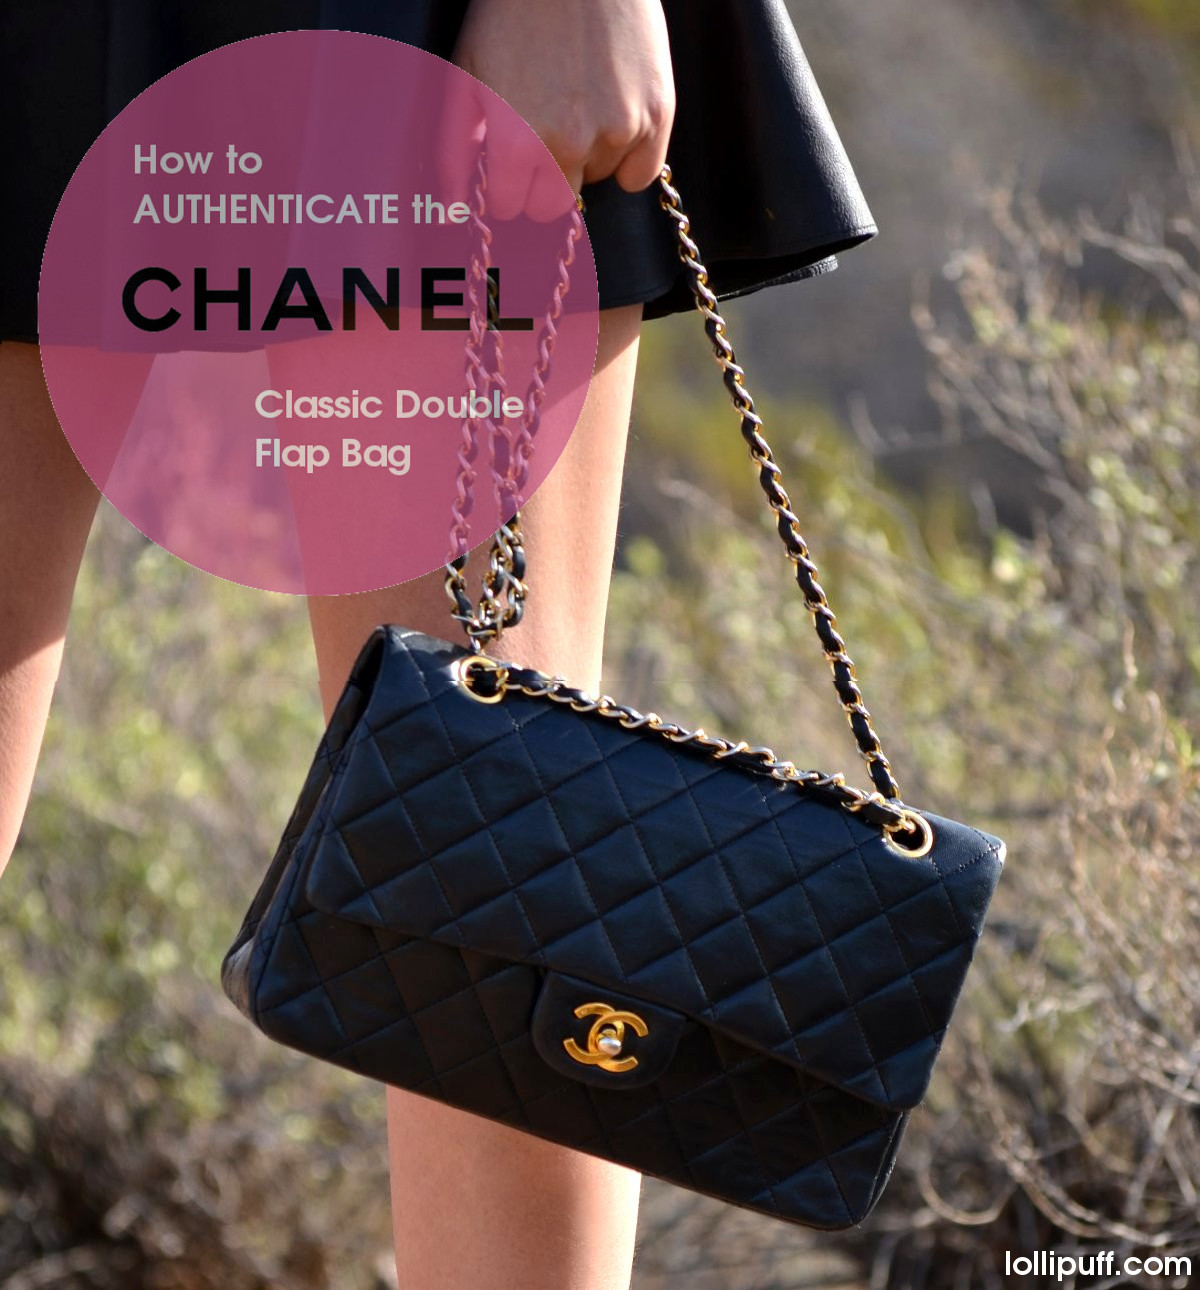 2.55 double flap classic Chanel bag authentication guide